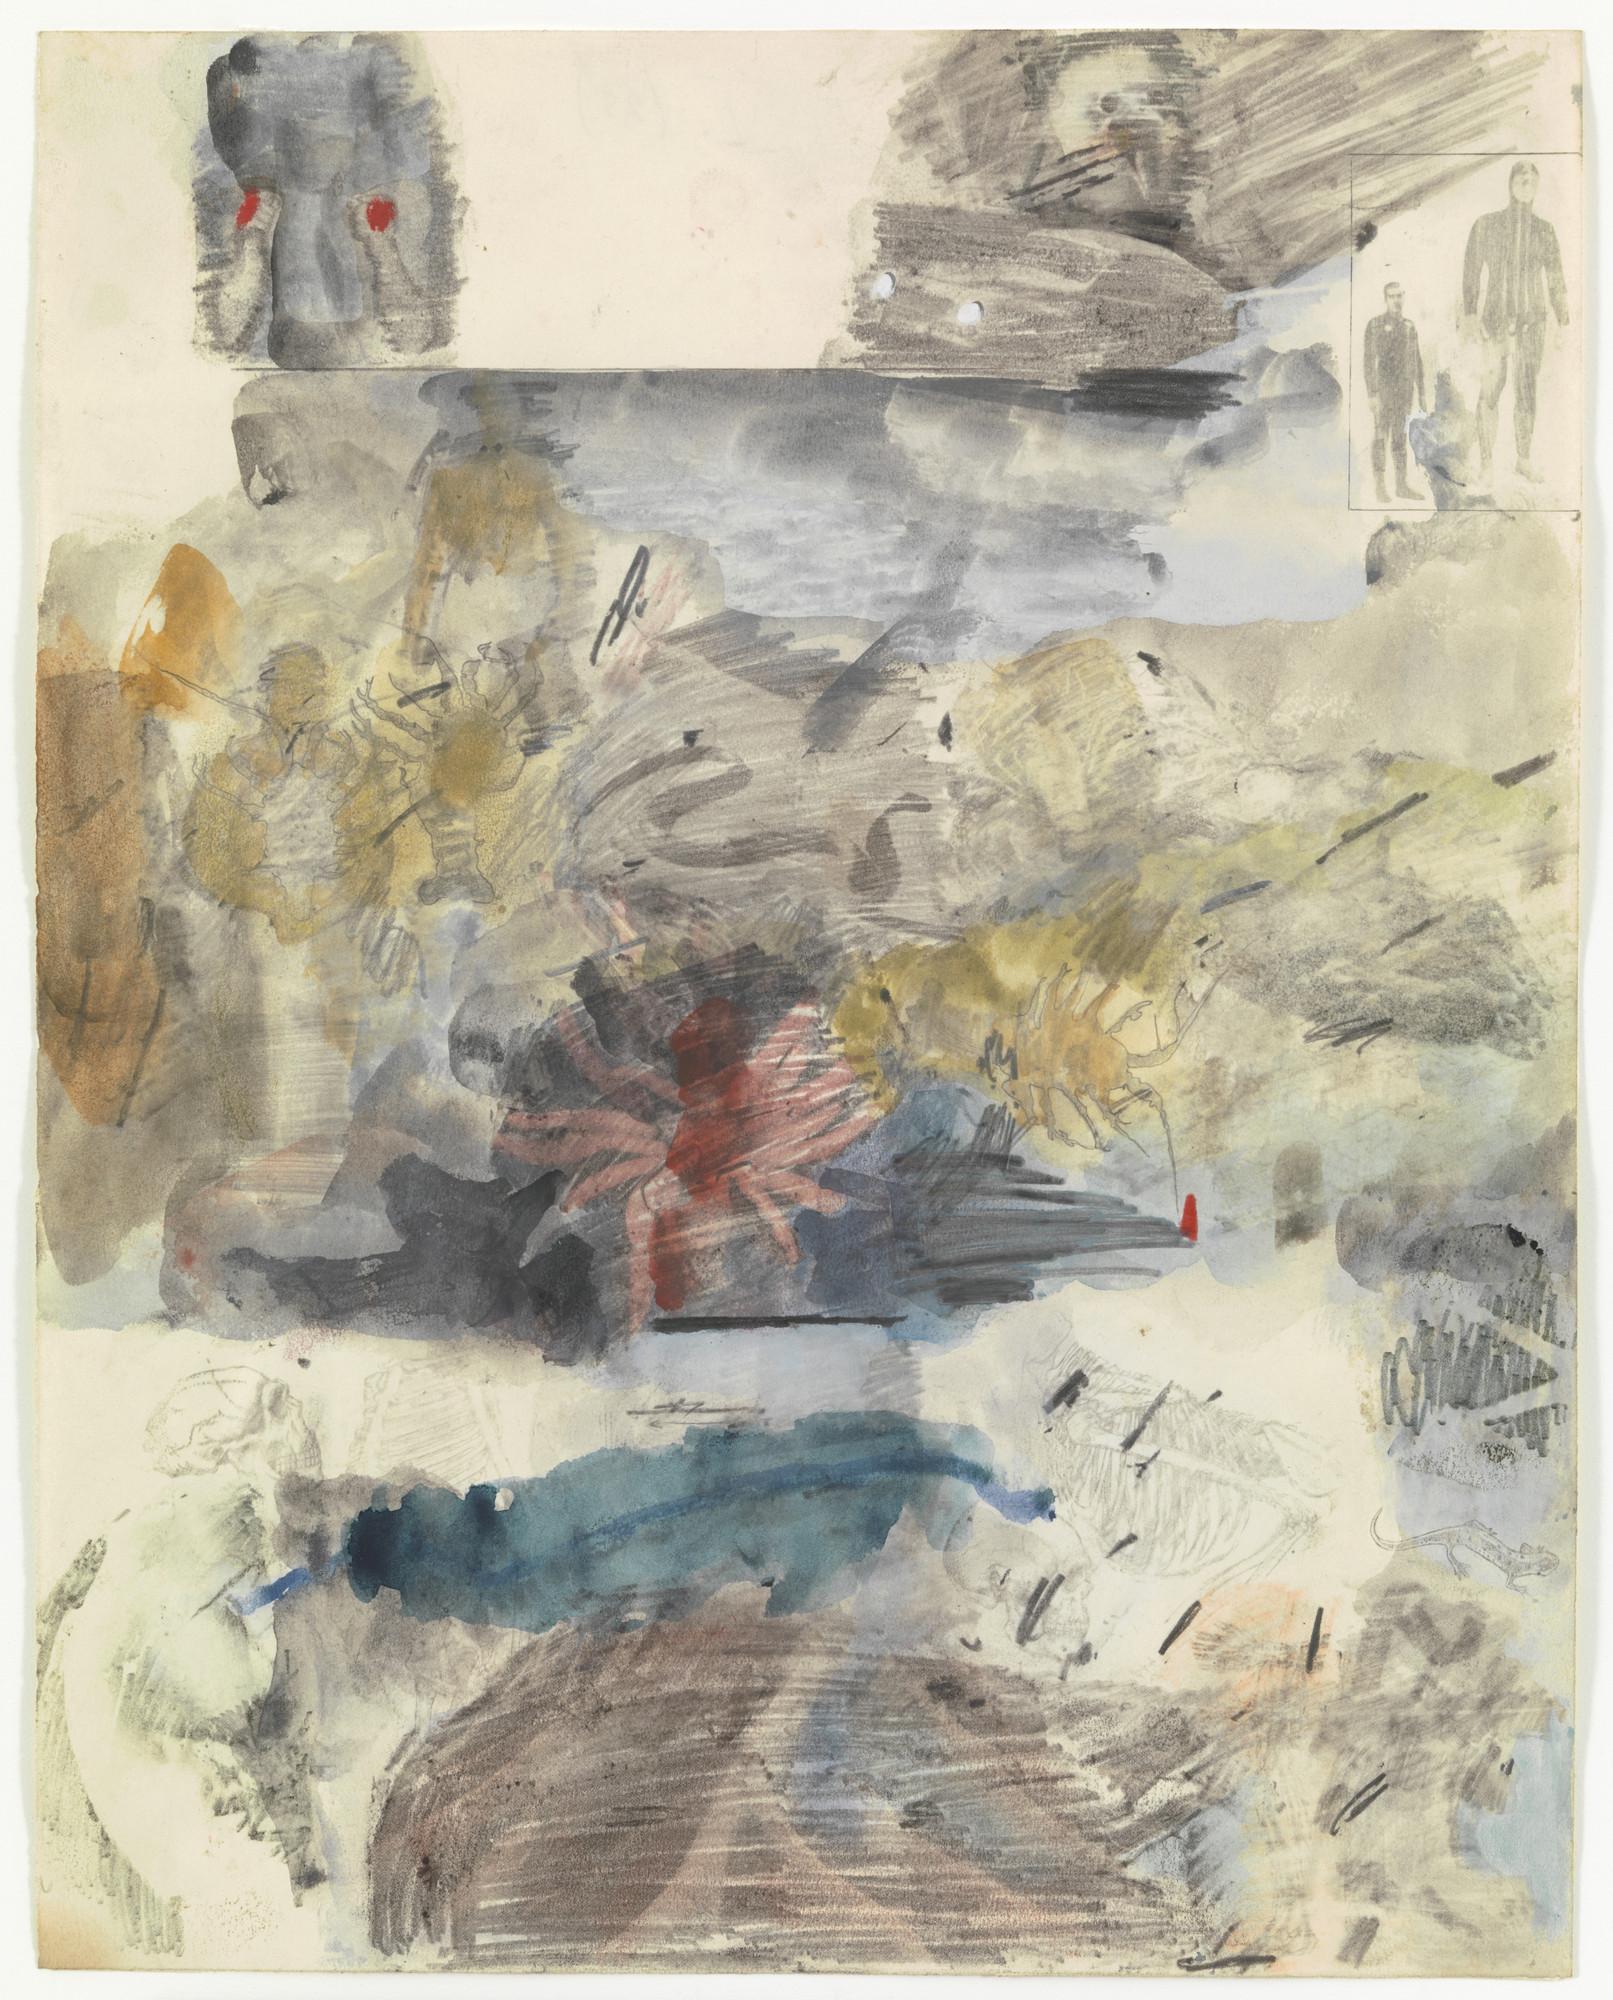 Robert Rauschenberg. Canto XXV: Circle Eight, Bolgia 7, The Thieves, from the series Thirty-Four Illustrations for Dante's Inferno. (1959-60)